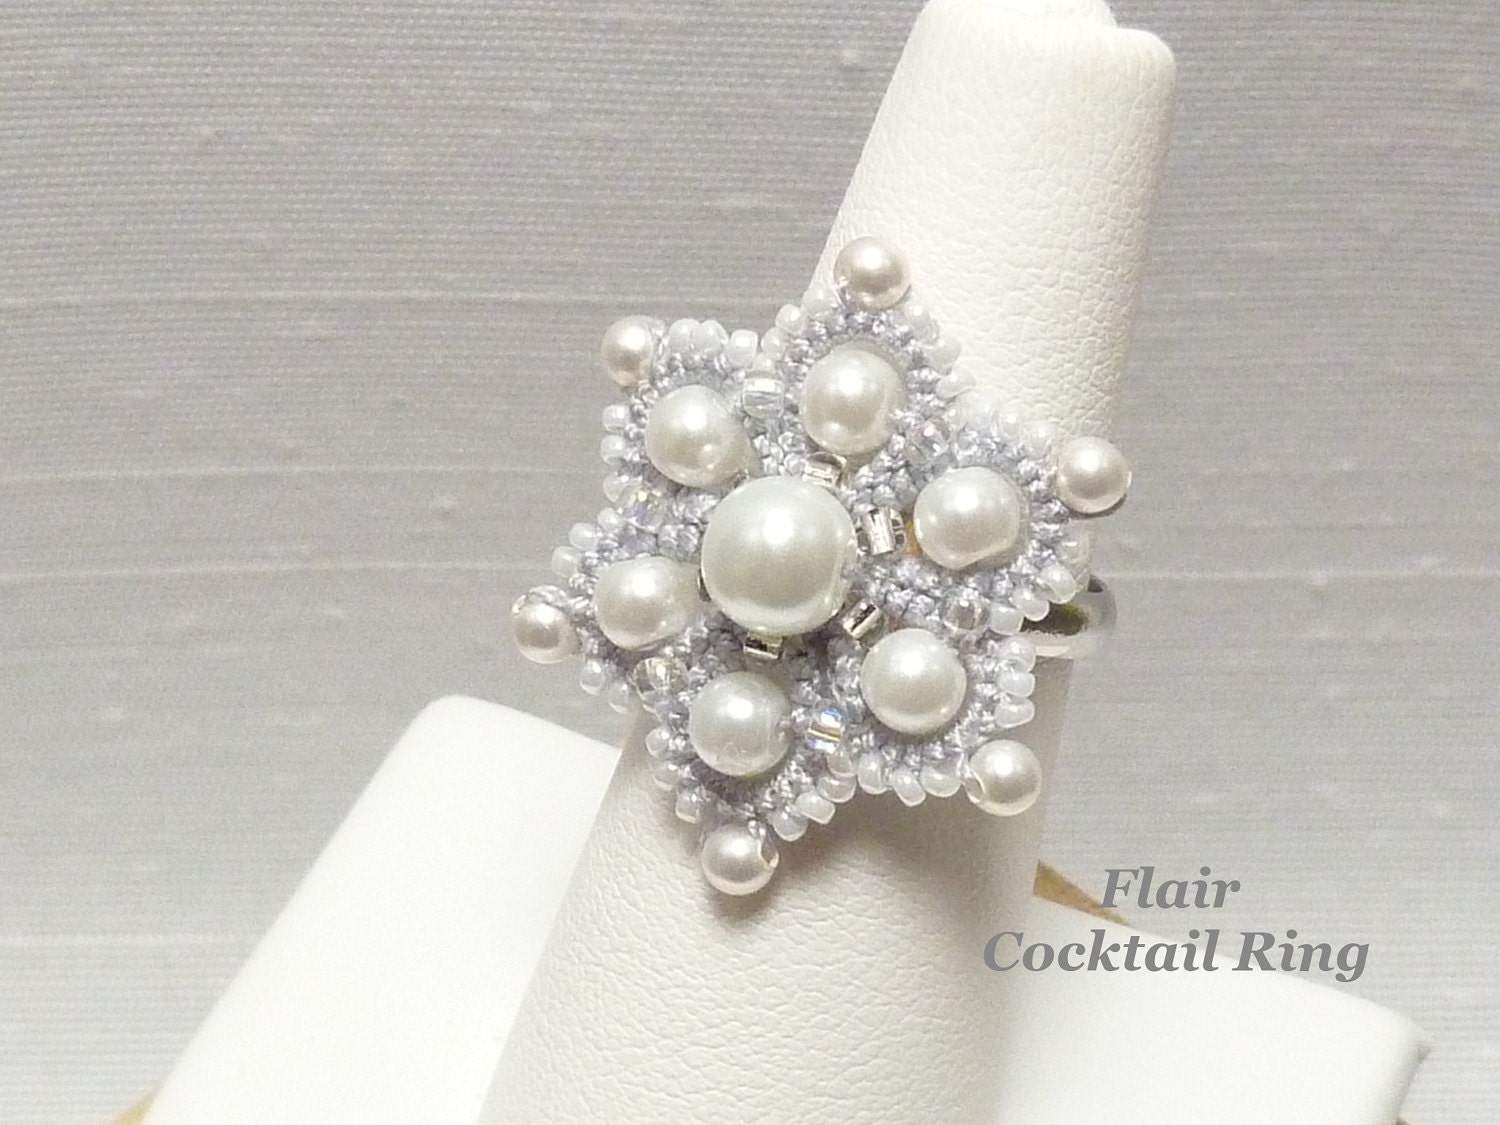 Lace Cocktail Ring Tatted silver Flower with Swarovski pearls